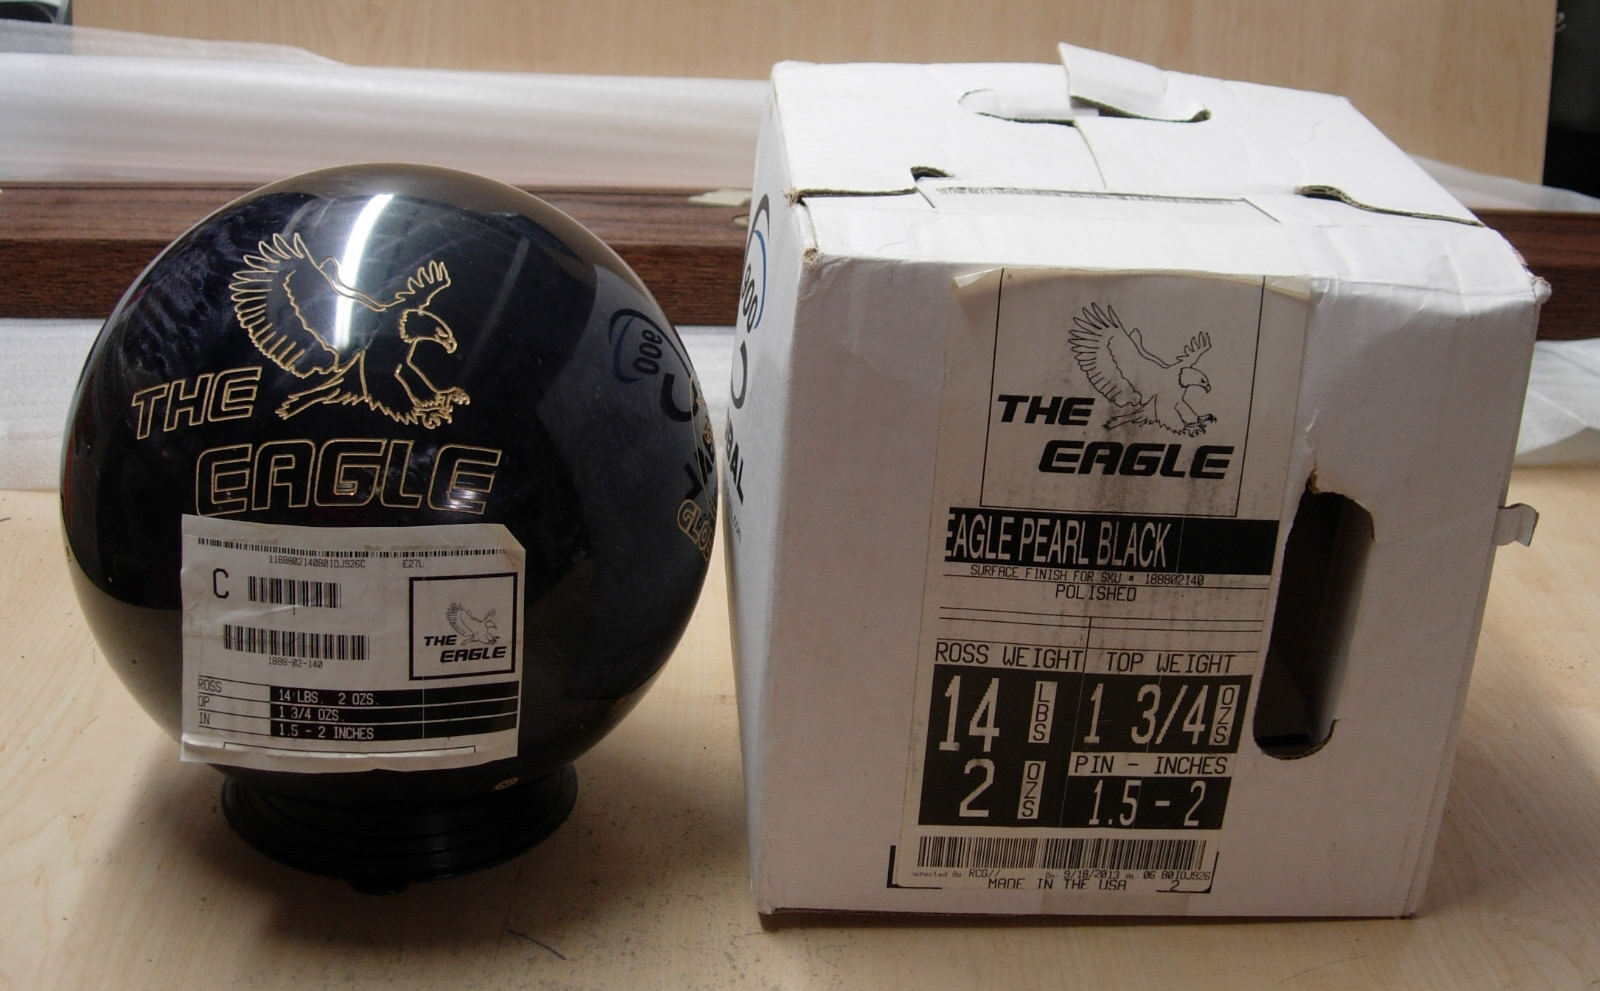 14Global Retired THE EAGLE Bowling Ball never drilled former display